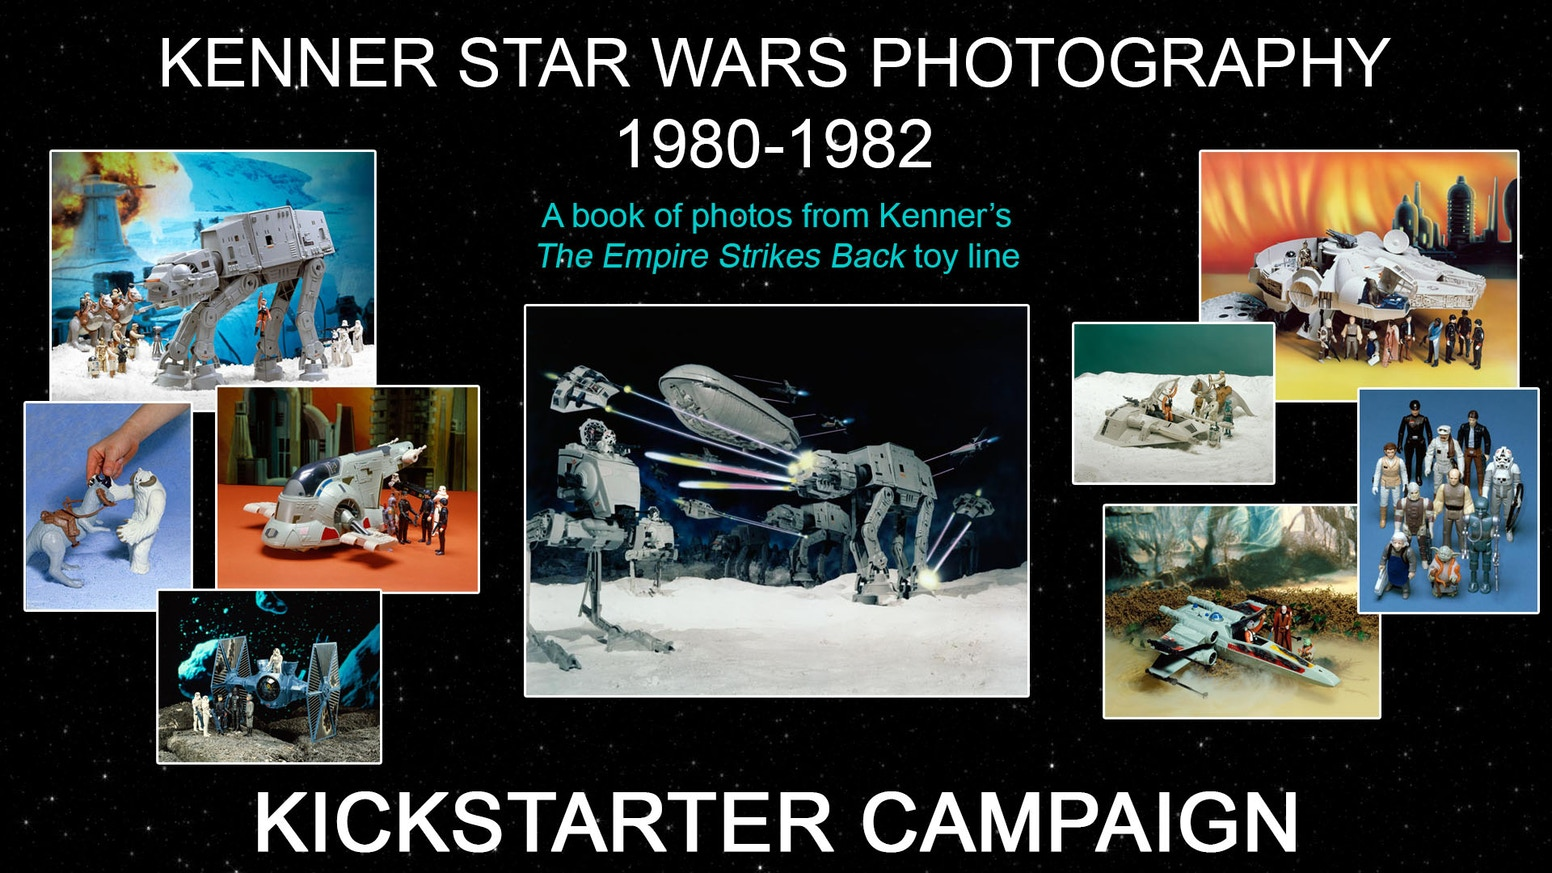 Hardcover book containing photos shot by original photographer for Kenner, Kim DM Simmons, for the original Star Wars toy line.